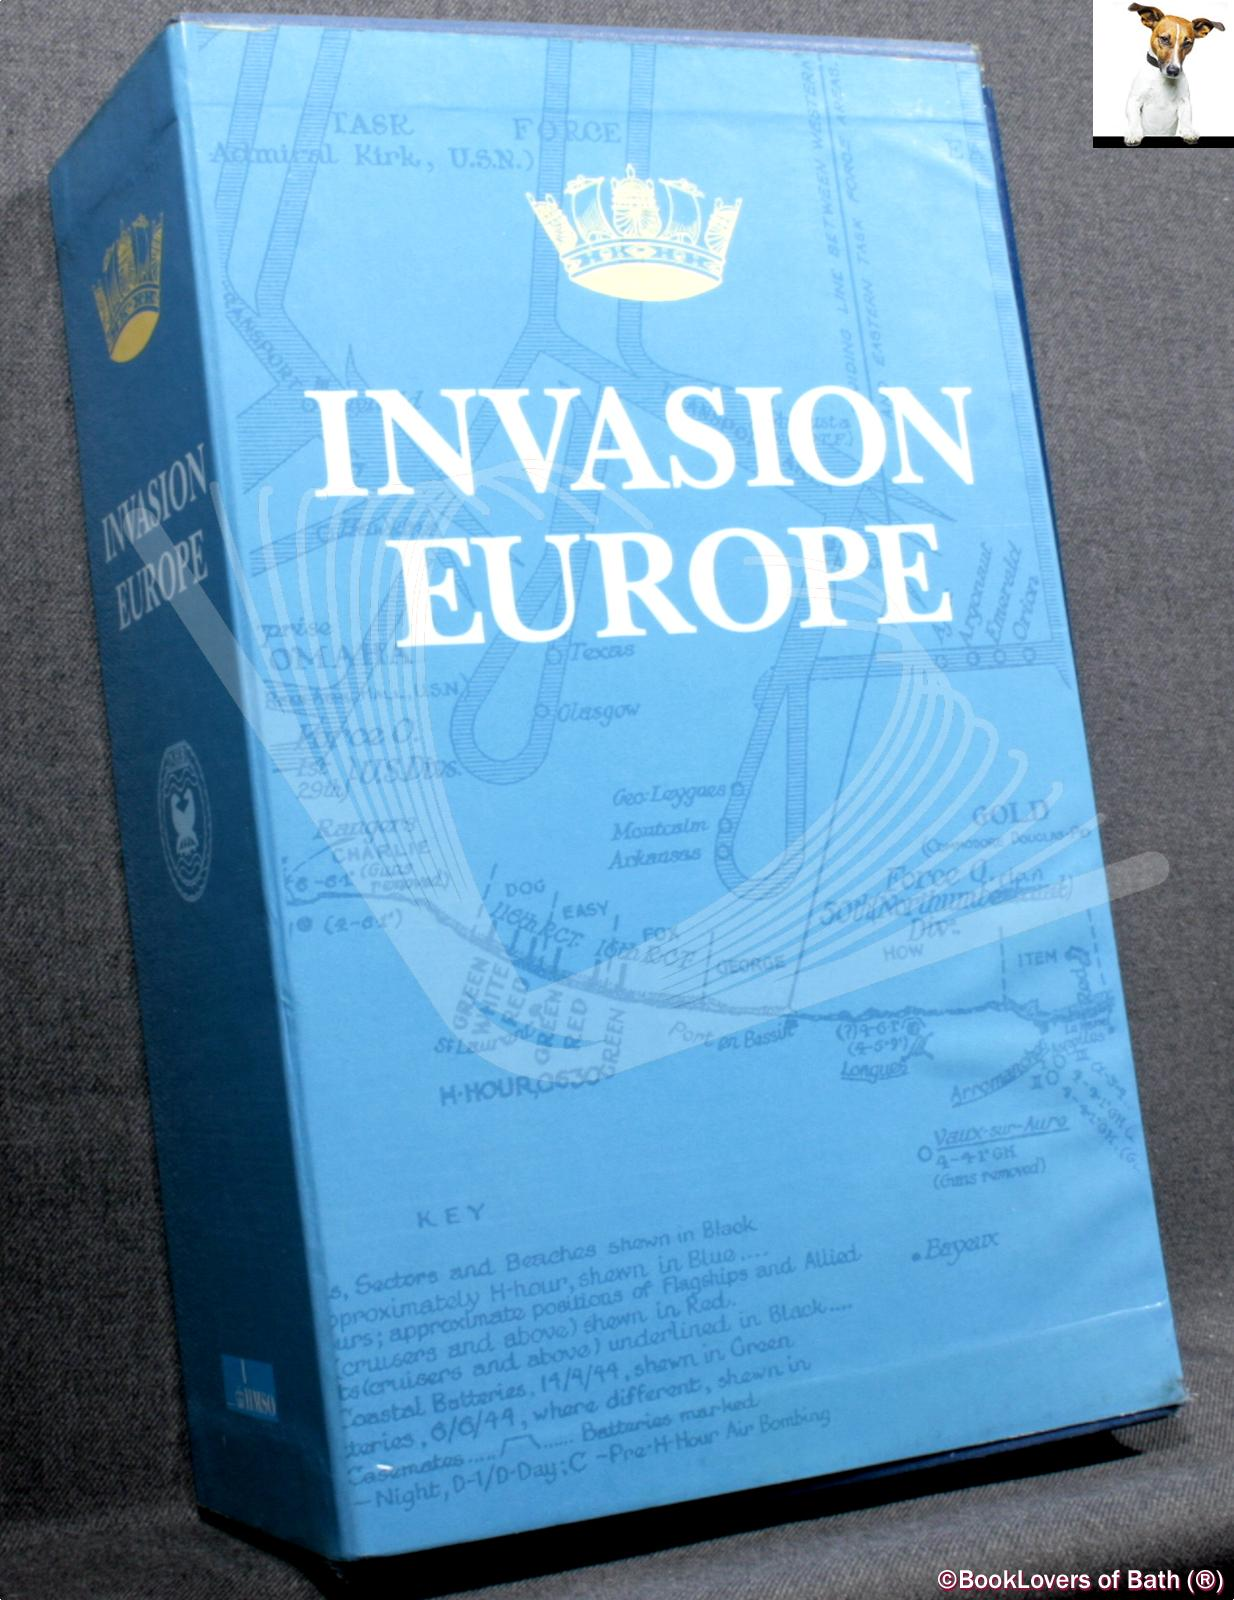 Invasion Europe: Operation Neptune - Landings in Normandy, June 1944; Campaign in North West Europe, June 1944 to May 1945; Invasion of the South of France - Operation Dragoon, August 1944; - Various